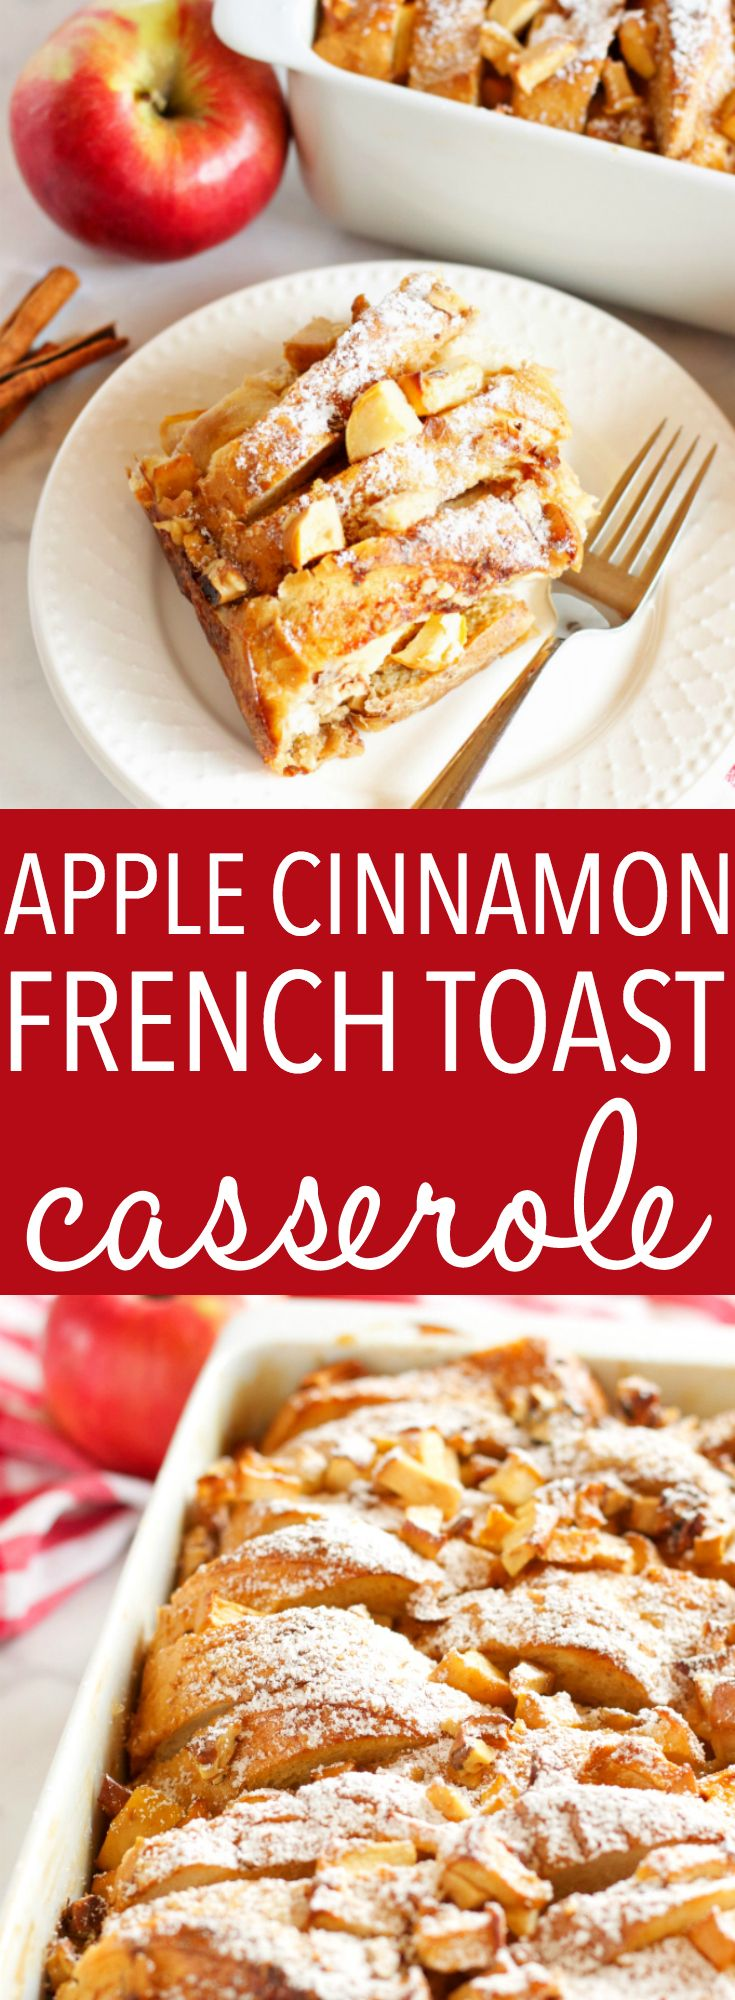 This Apple Cinnamon French Toast Casserole is the perfect holiday breakfast entertaining recipe made with fresh apples, pecans, and served with maple syrup! Recipe from thebusybaker.ca! #holidaybreakfastrecipe #holidayrecipe #christmasbreakfast #easyholidaybreakfast via @busybakerblog